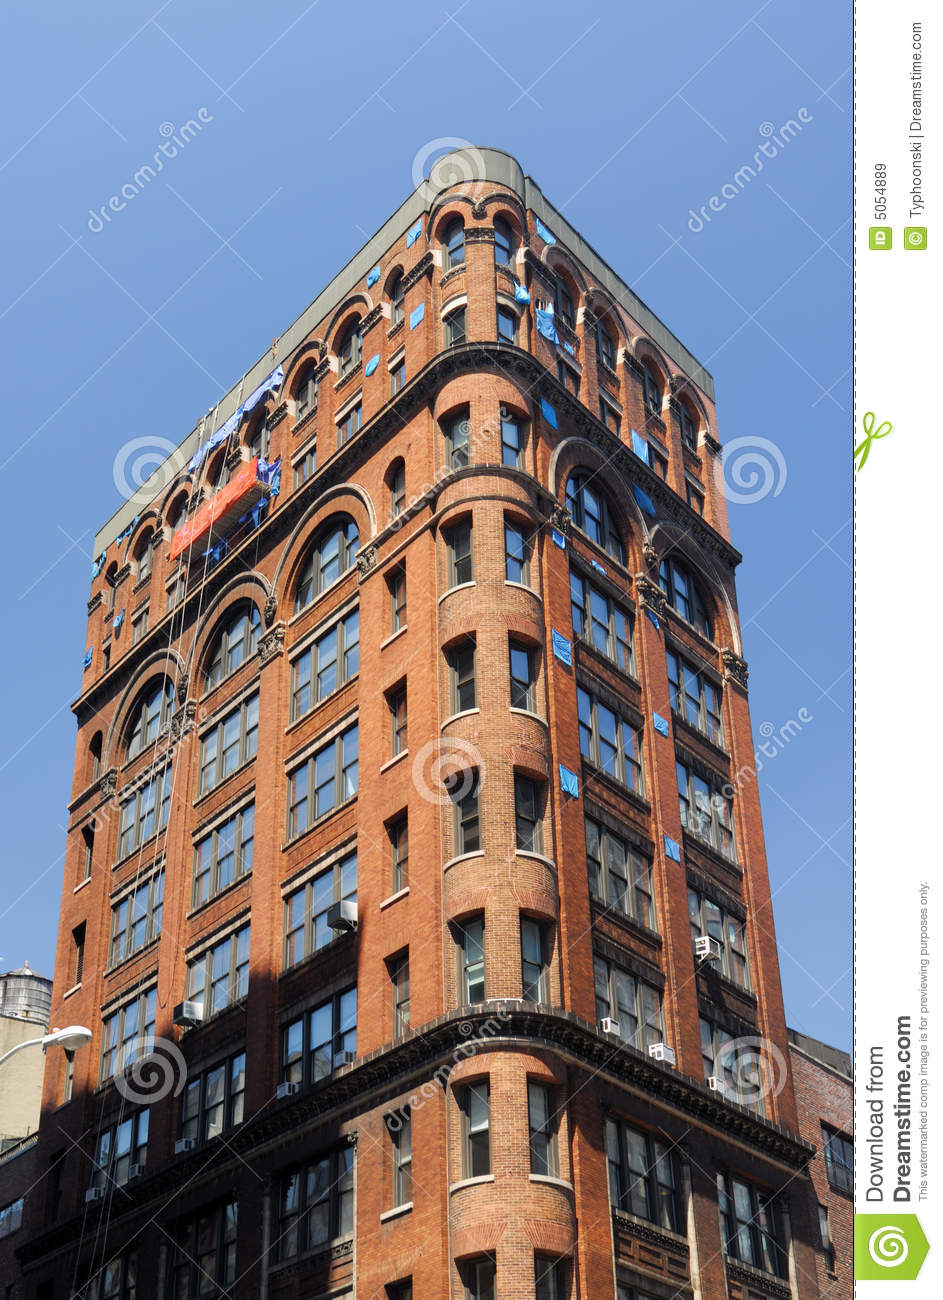 Art deco building in new york royalty free stock images for Deco new york